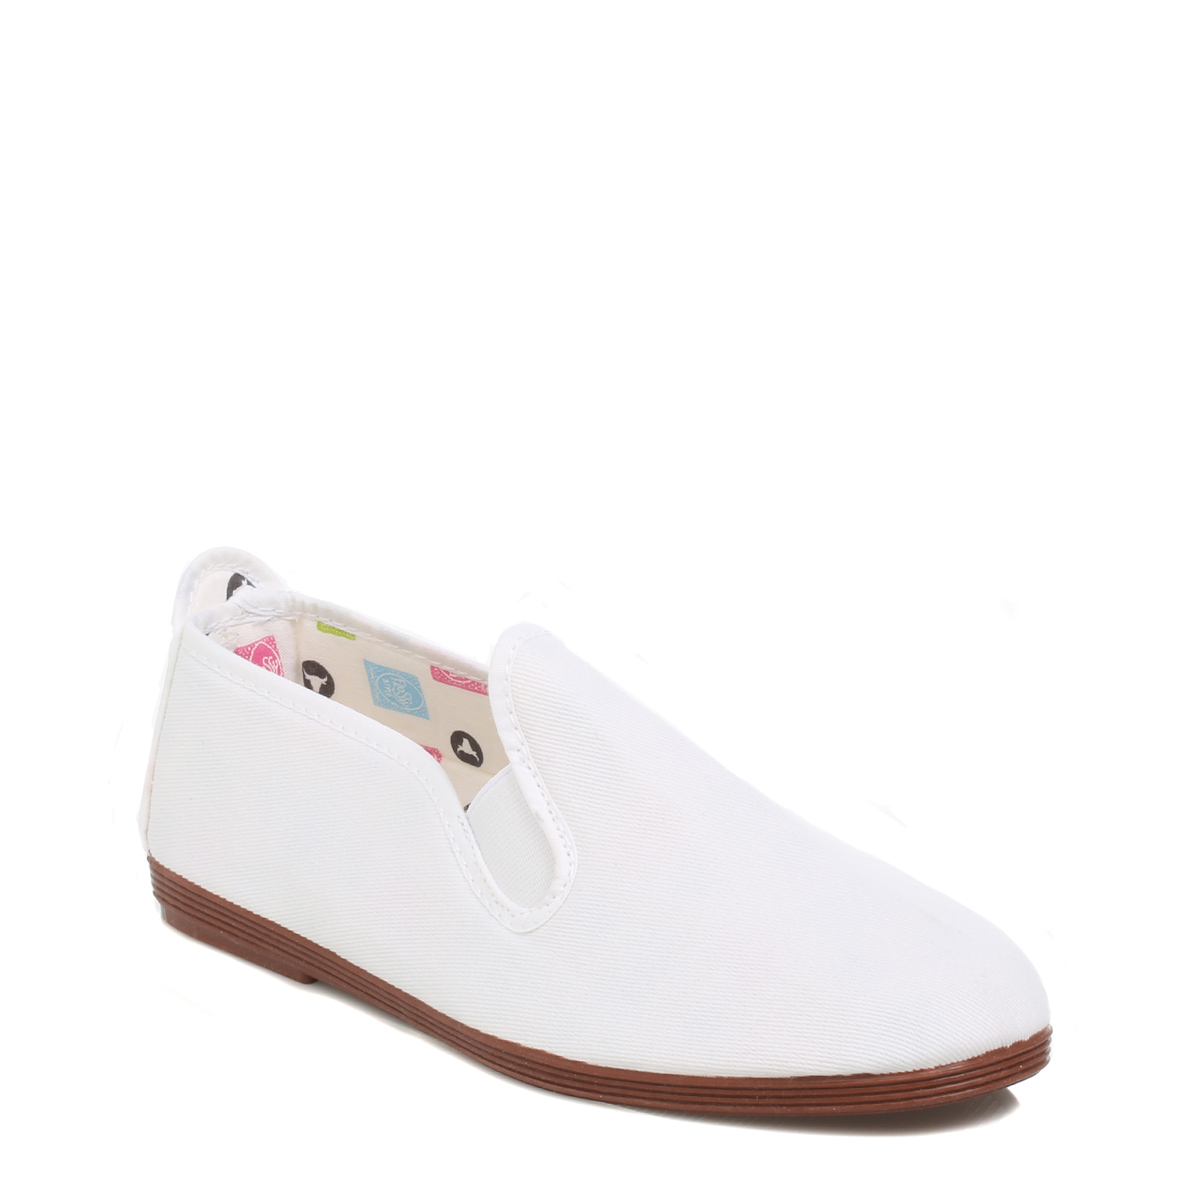 flossy womens casual shoes flats unisex white canvas slip